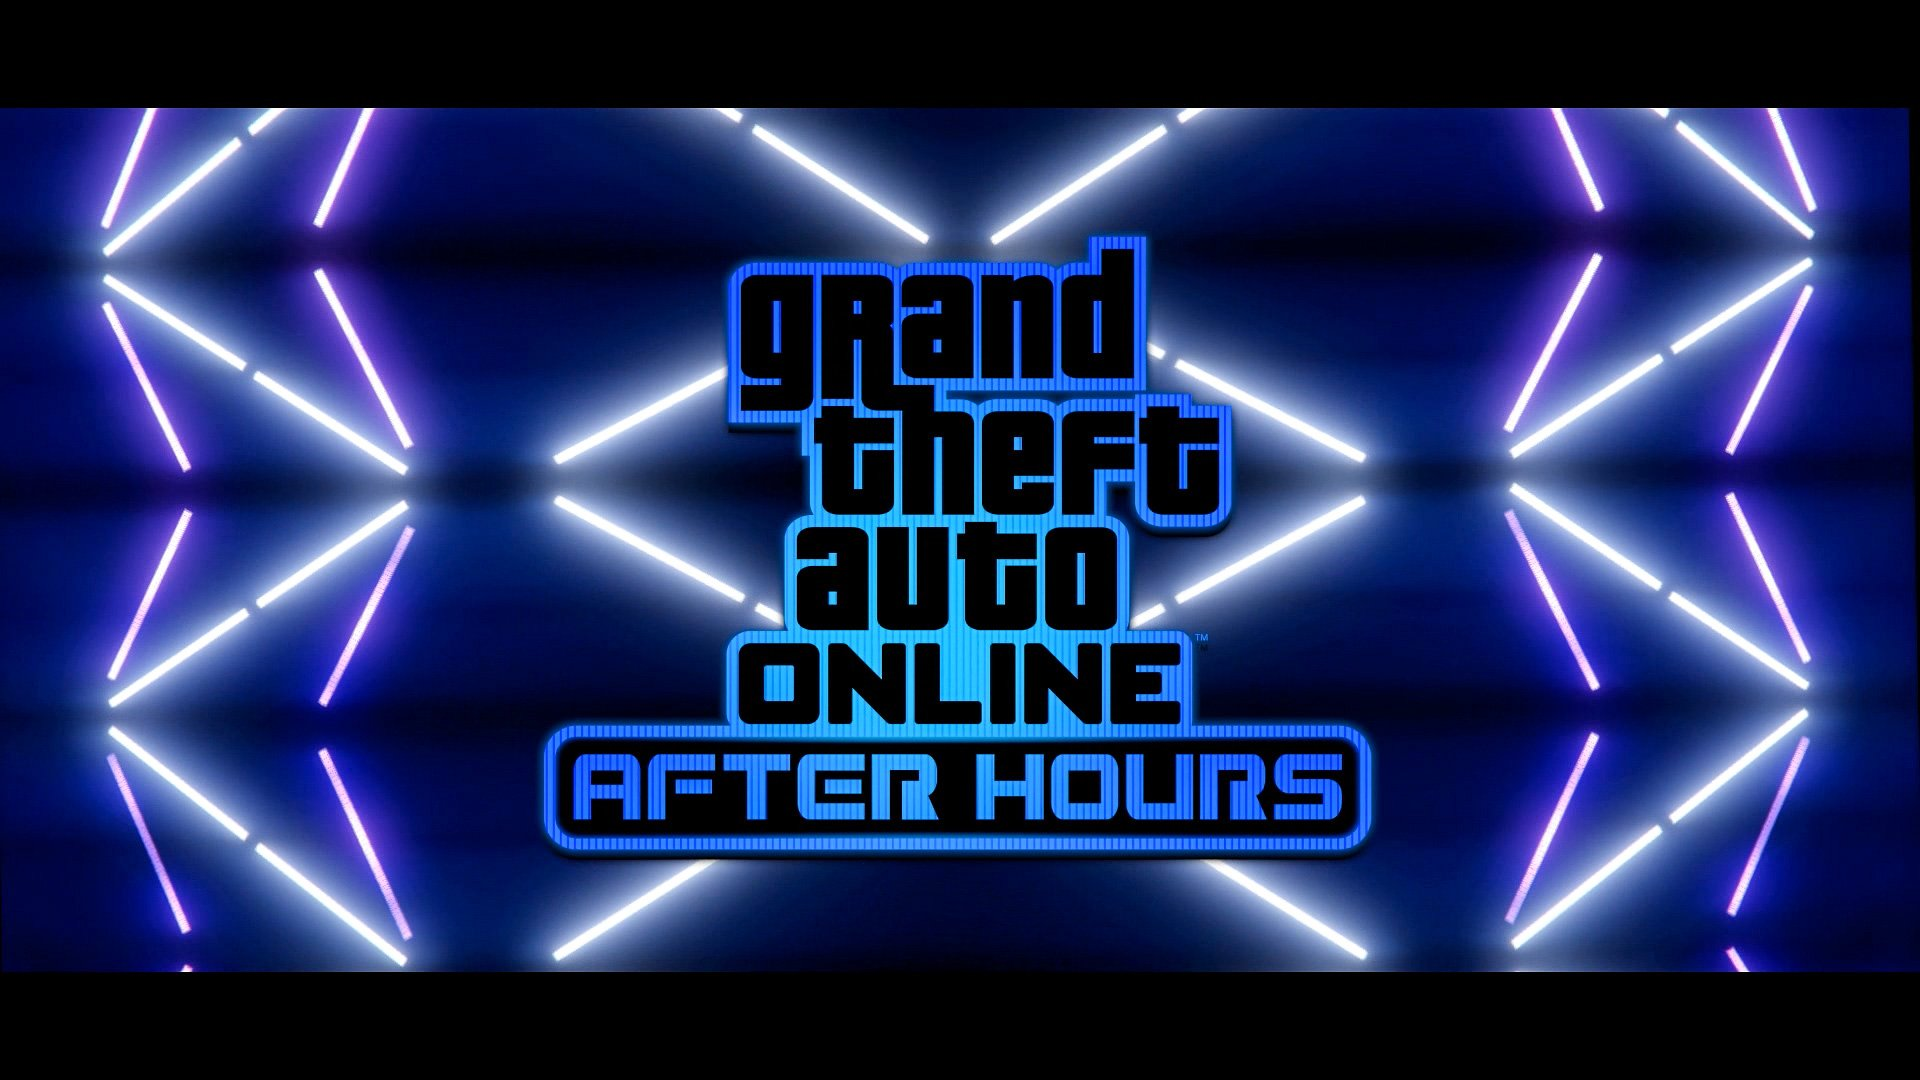 The party starts on July 24th. GTA Online: After Hours https://t.co/6mhWMlEatb https://t.co/aEbuqjjxDU